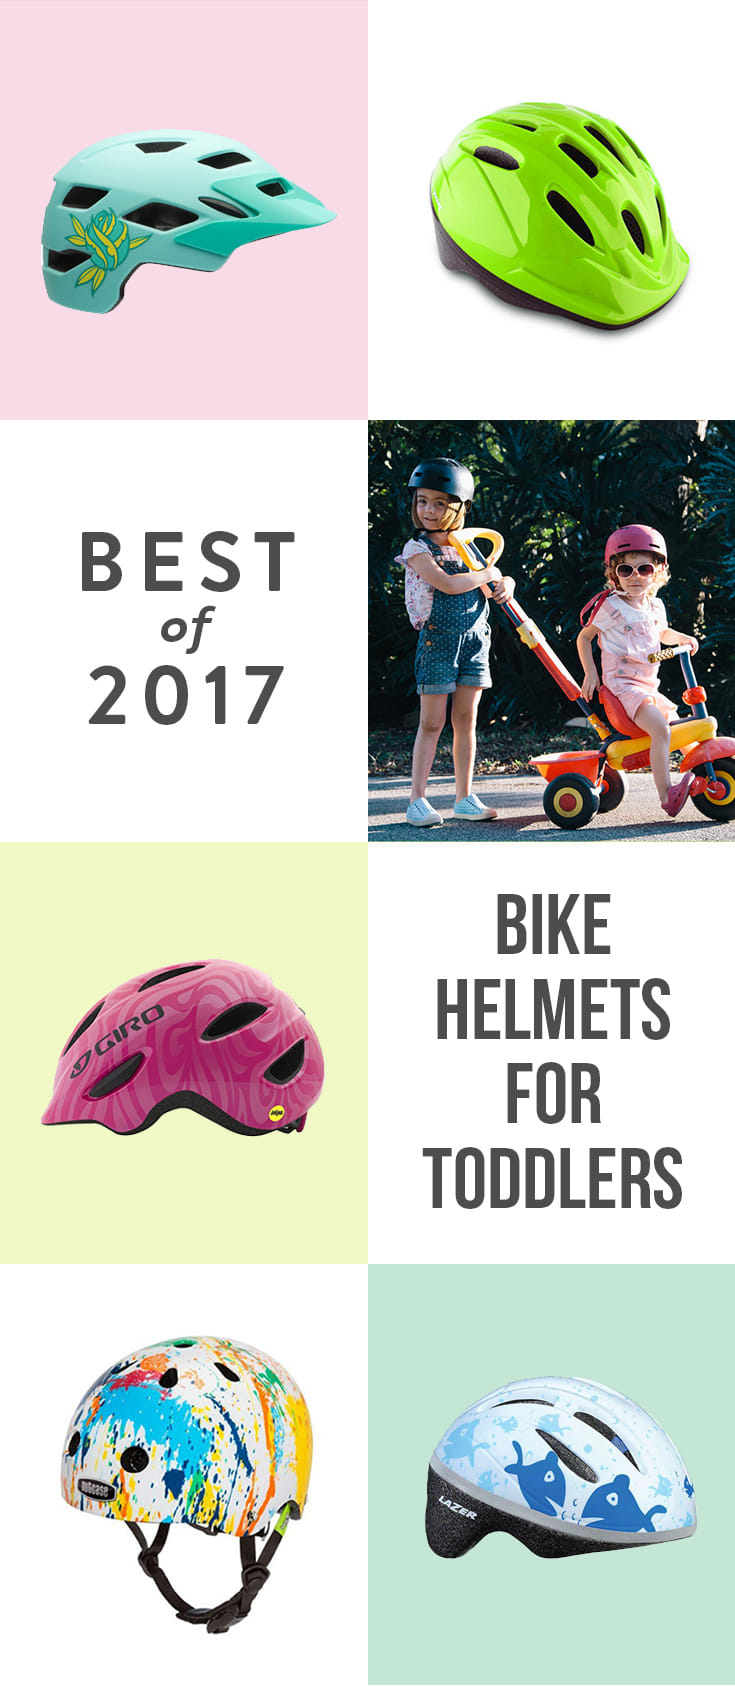 Whether hopping on a seat on your bike or on their own two wheels, these five bike helmets will keep your tot safe and cool.